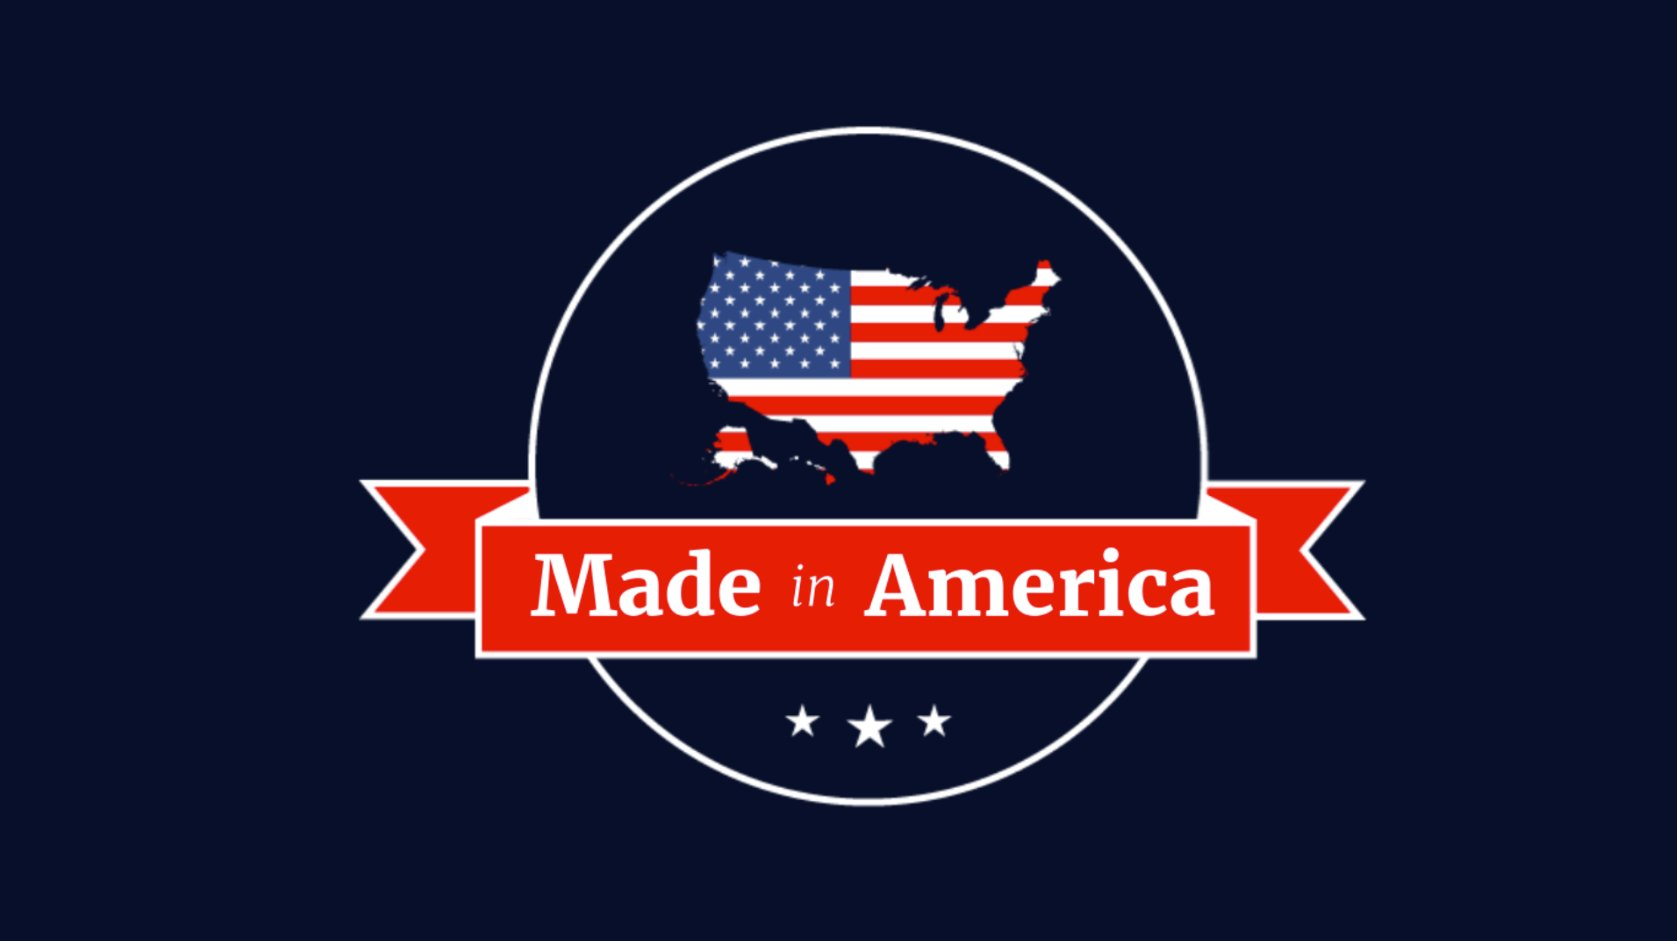 Everything you need to know about today's #MadeInAmerica Showcase: https://t.co/OuqADnNnjH https://t.co/epDqZnofuo